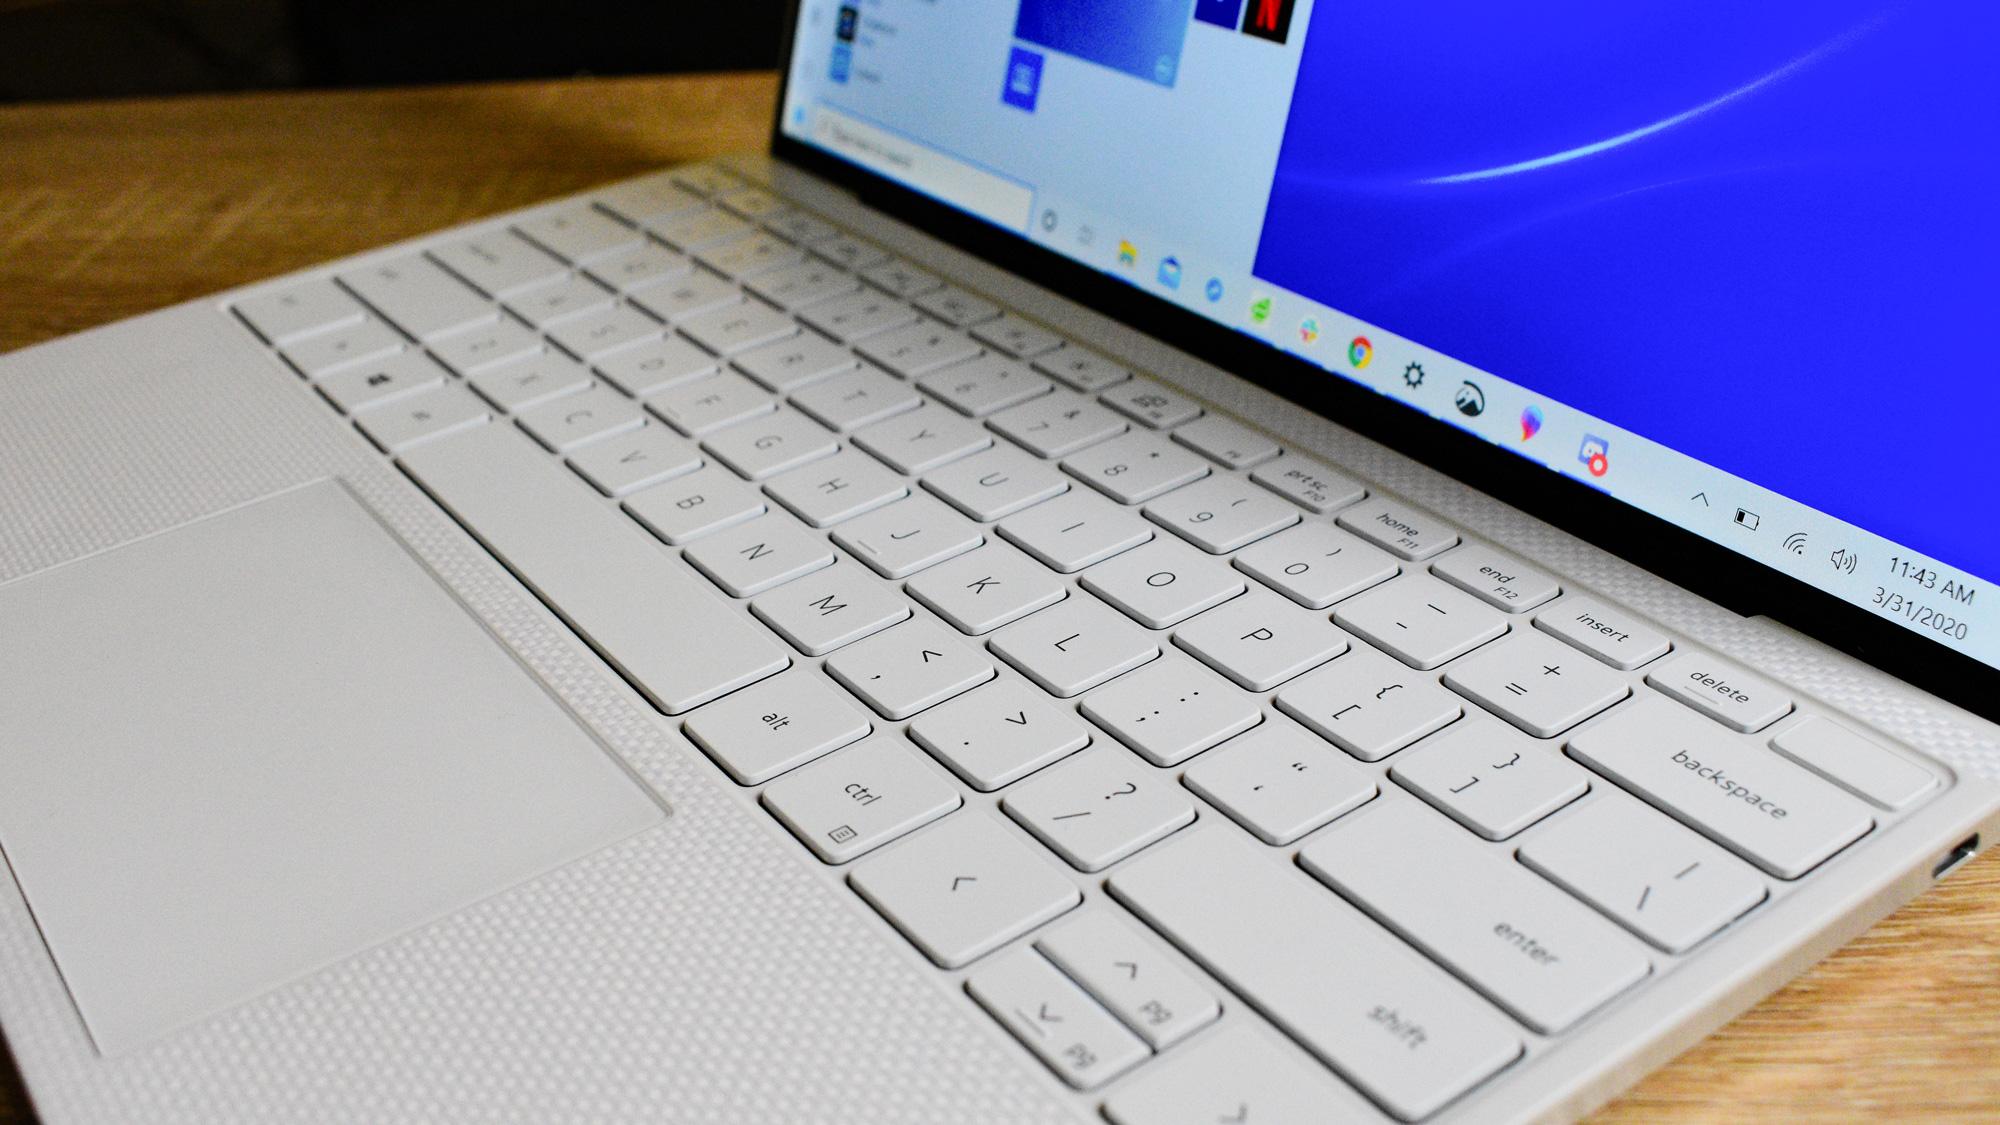 The Dell XPS 13 (2020)'s comfortable keyboard